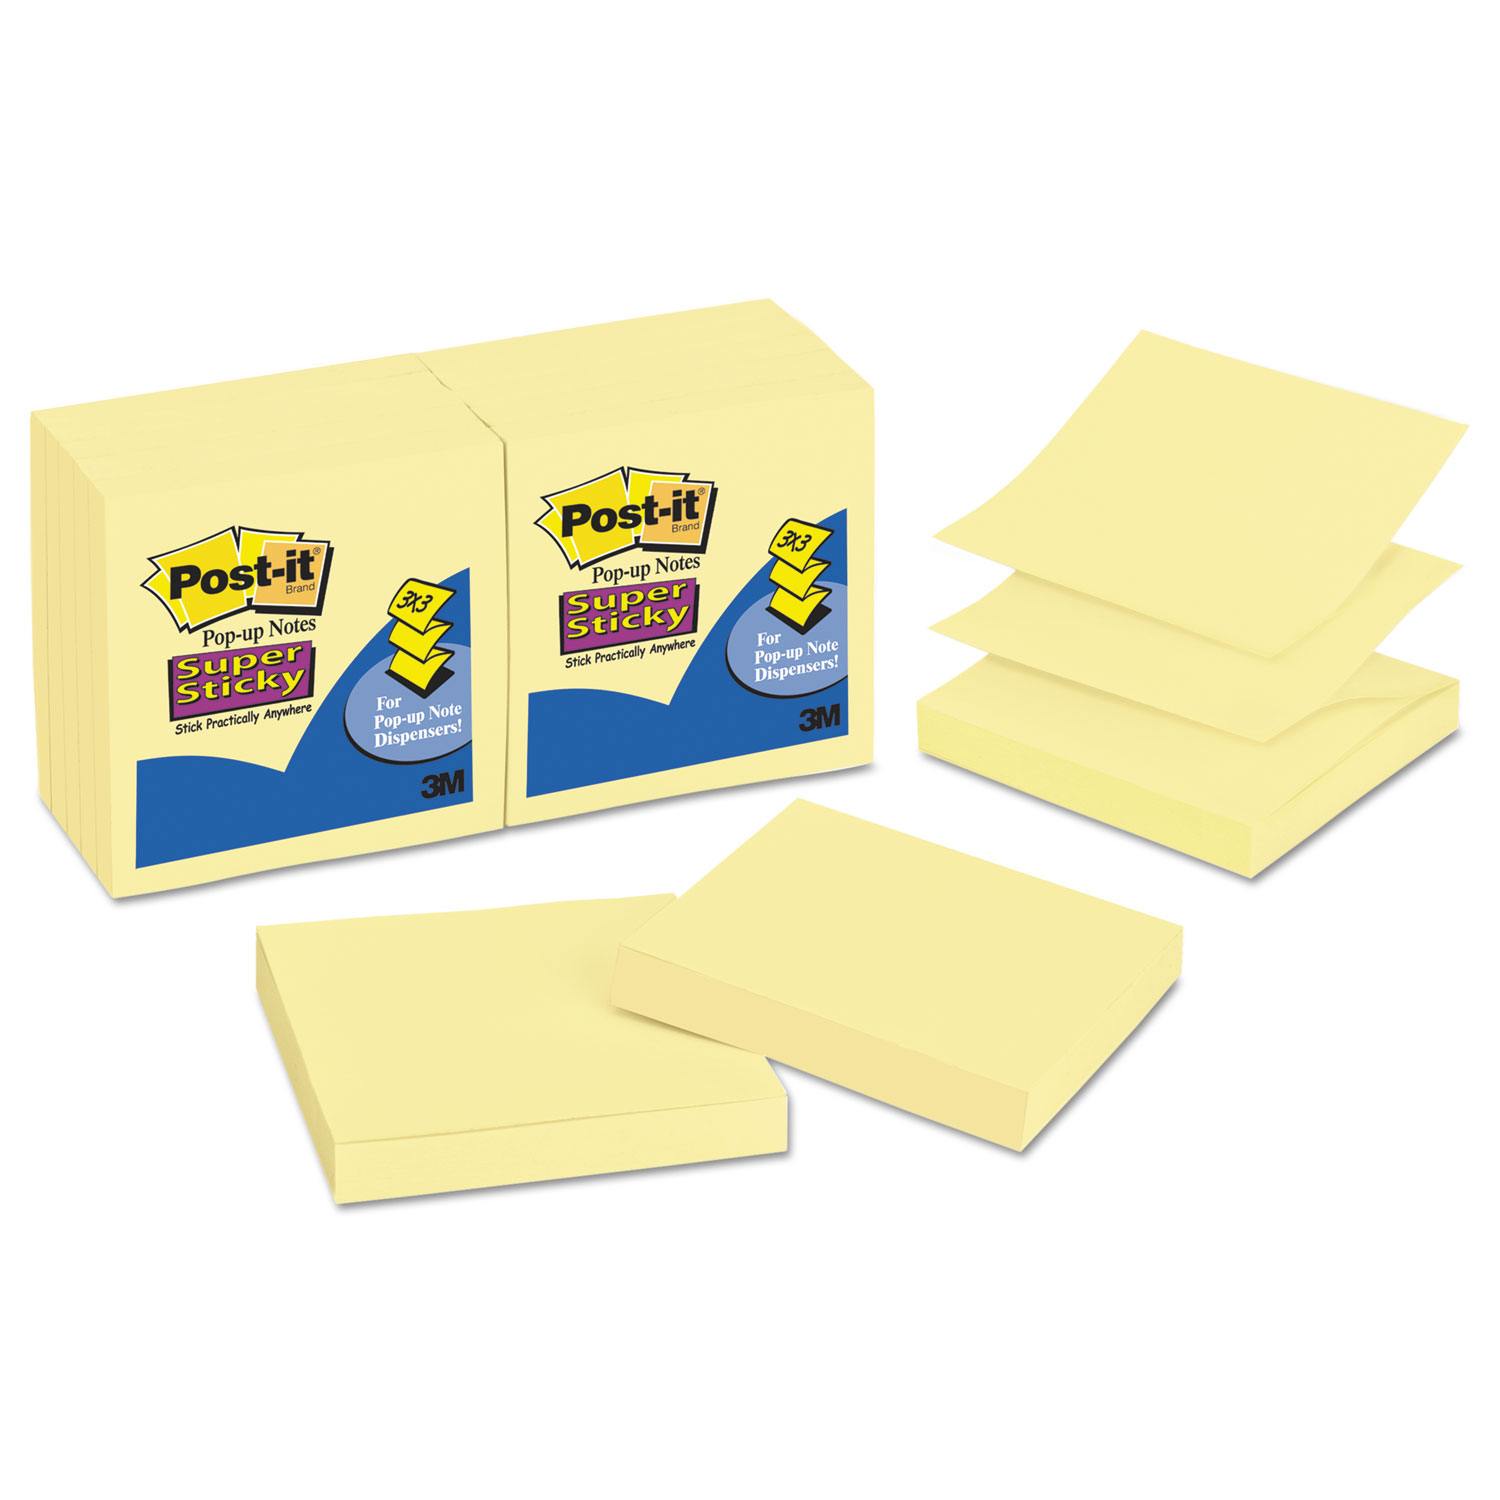 Pop-up 3 x 3 Note Refill, Canary Yellow, 90 Notes/Pad, 12 Pads/Pack